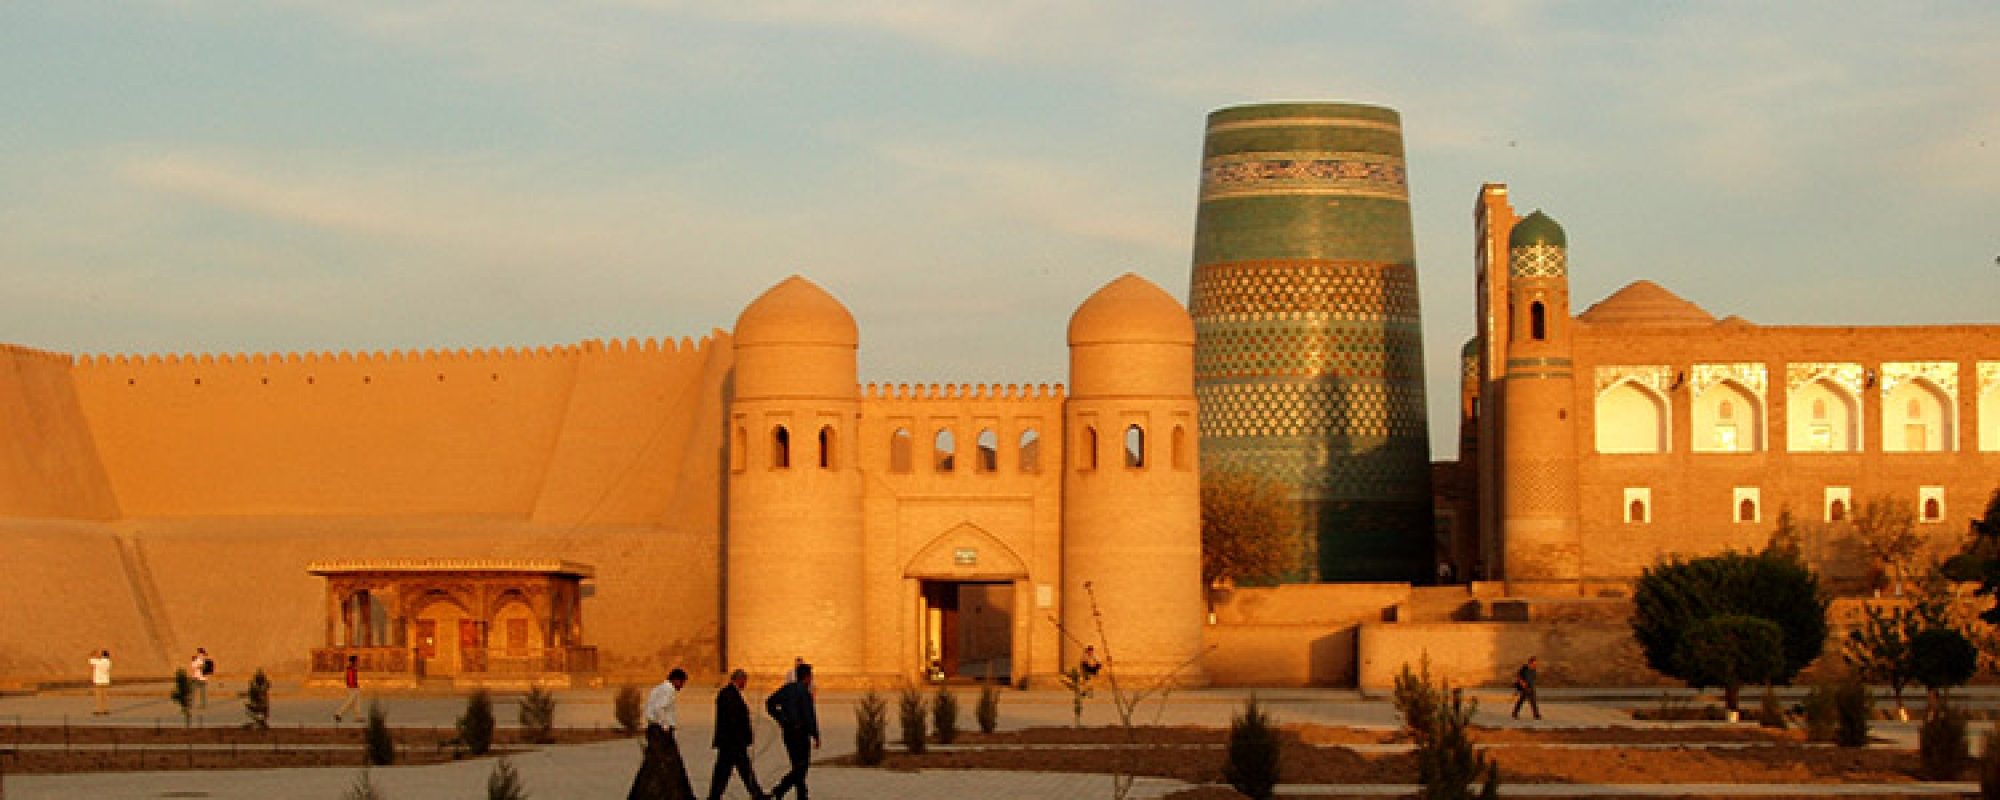 Ancient Khiva